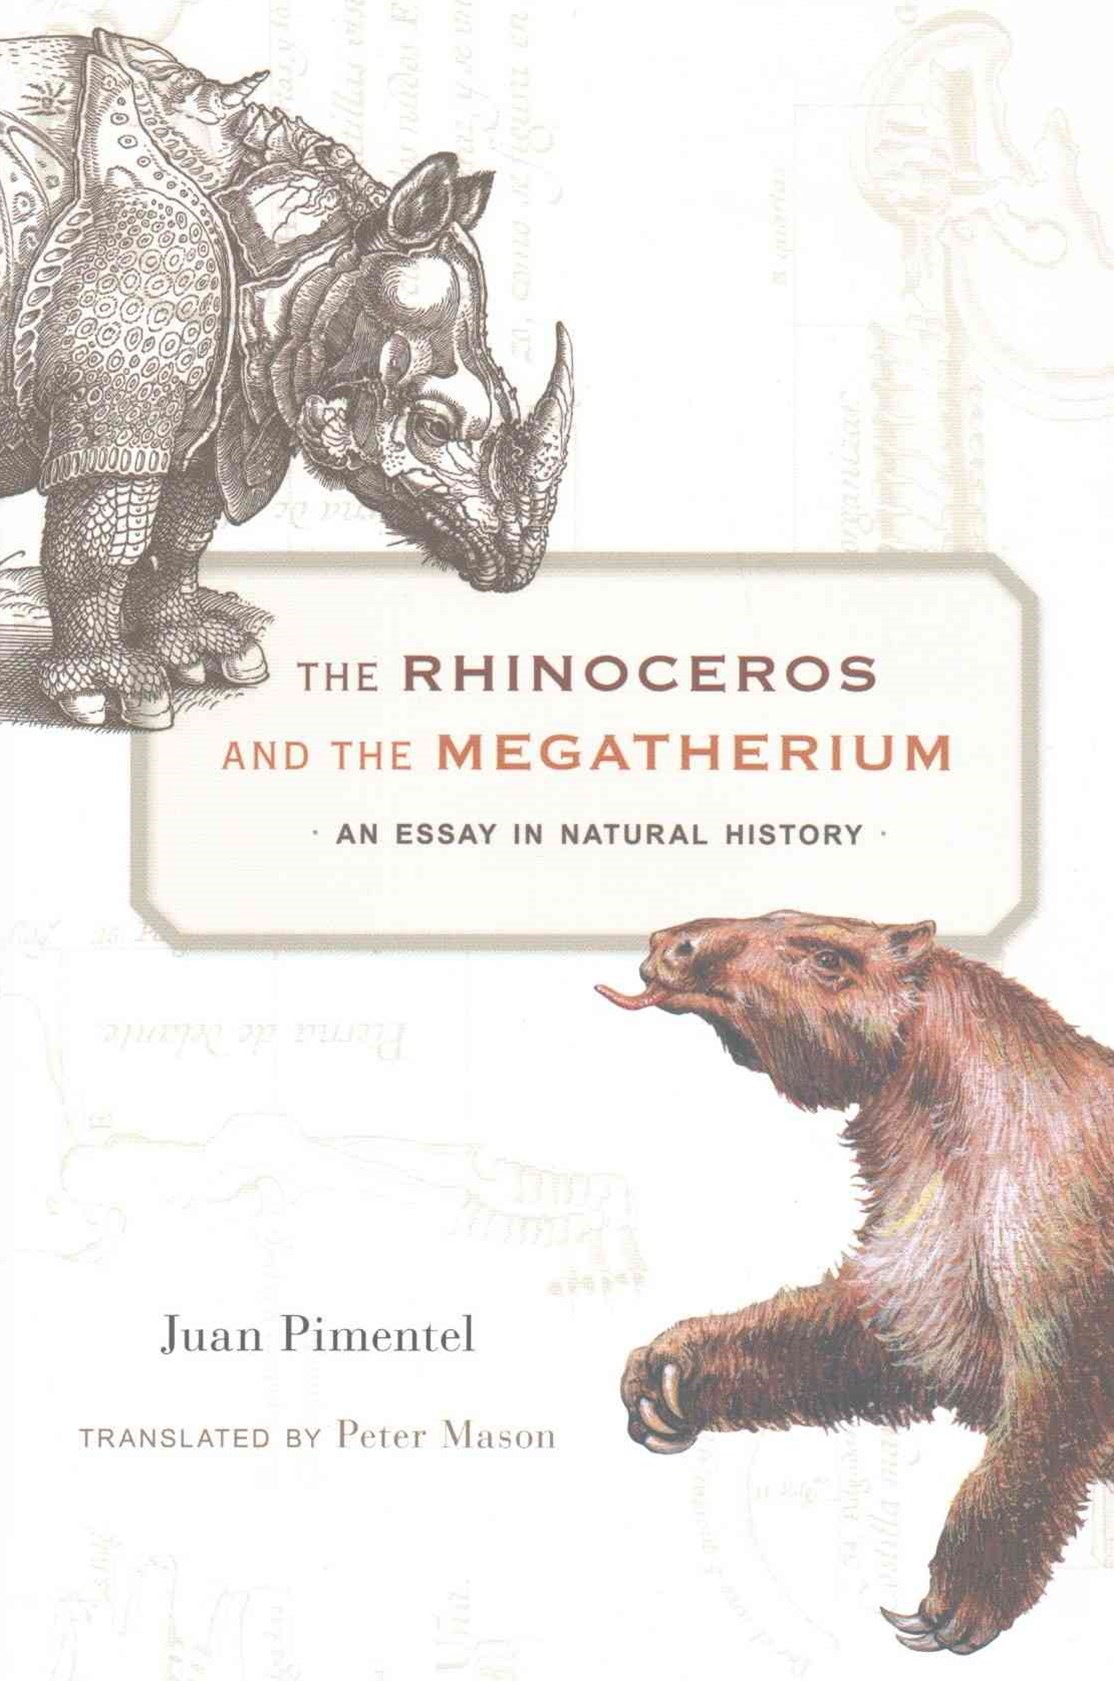 Rhinoceros and the Megatherium